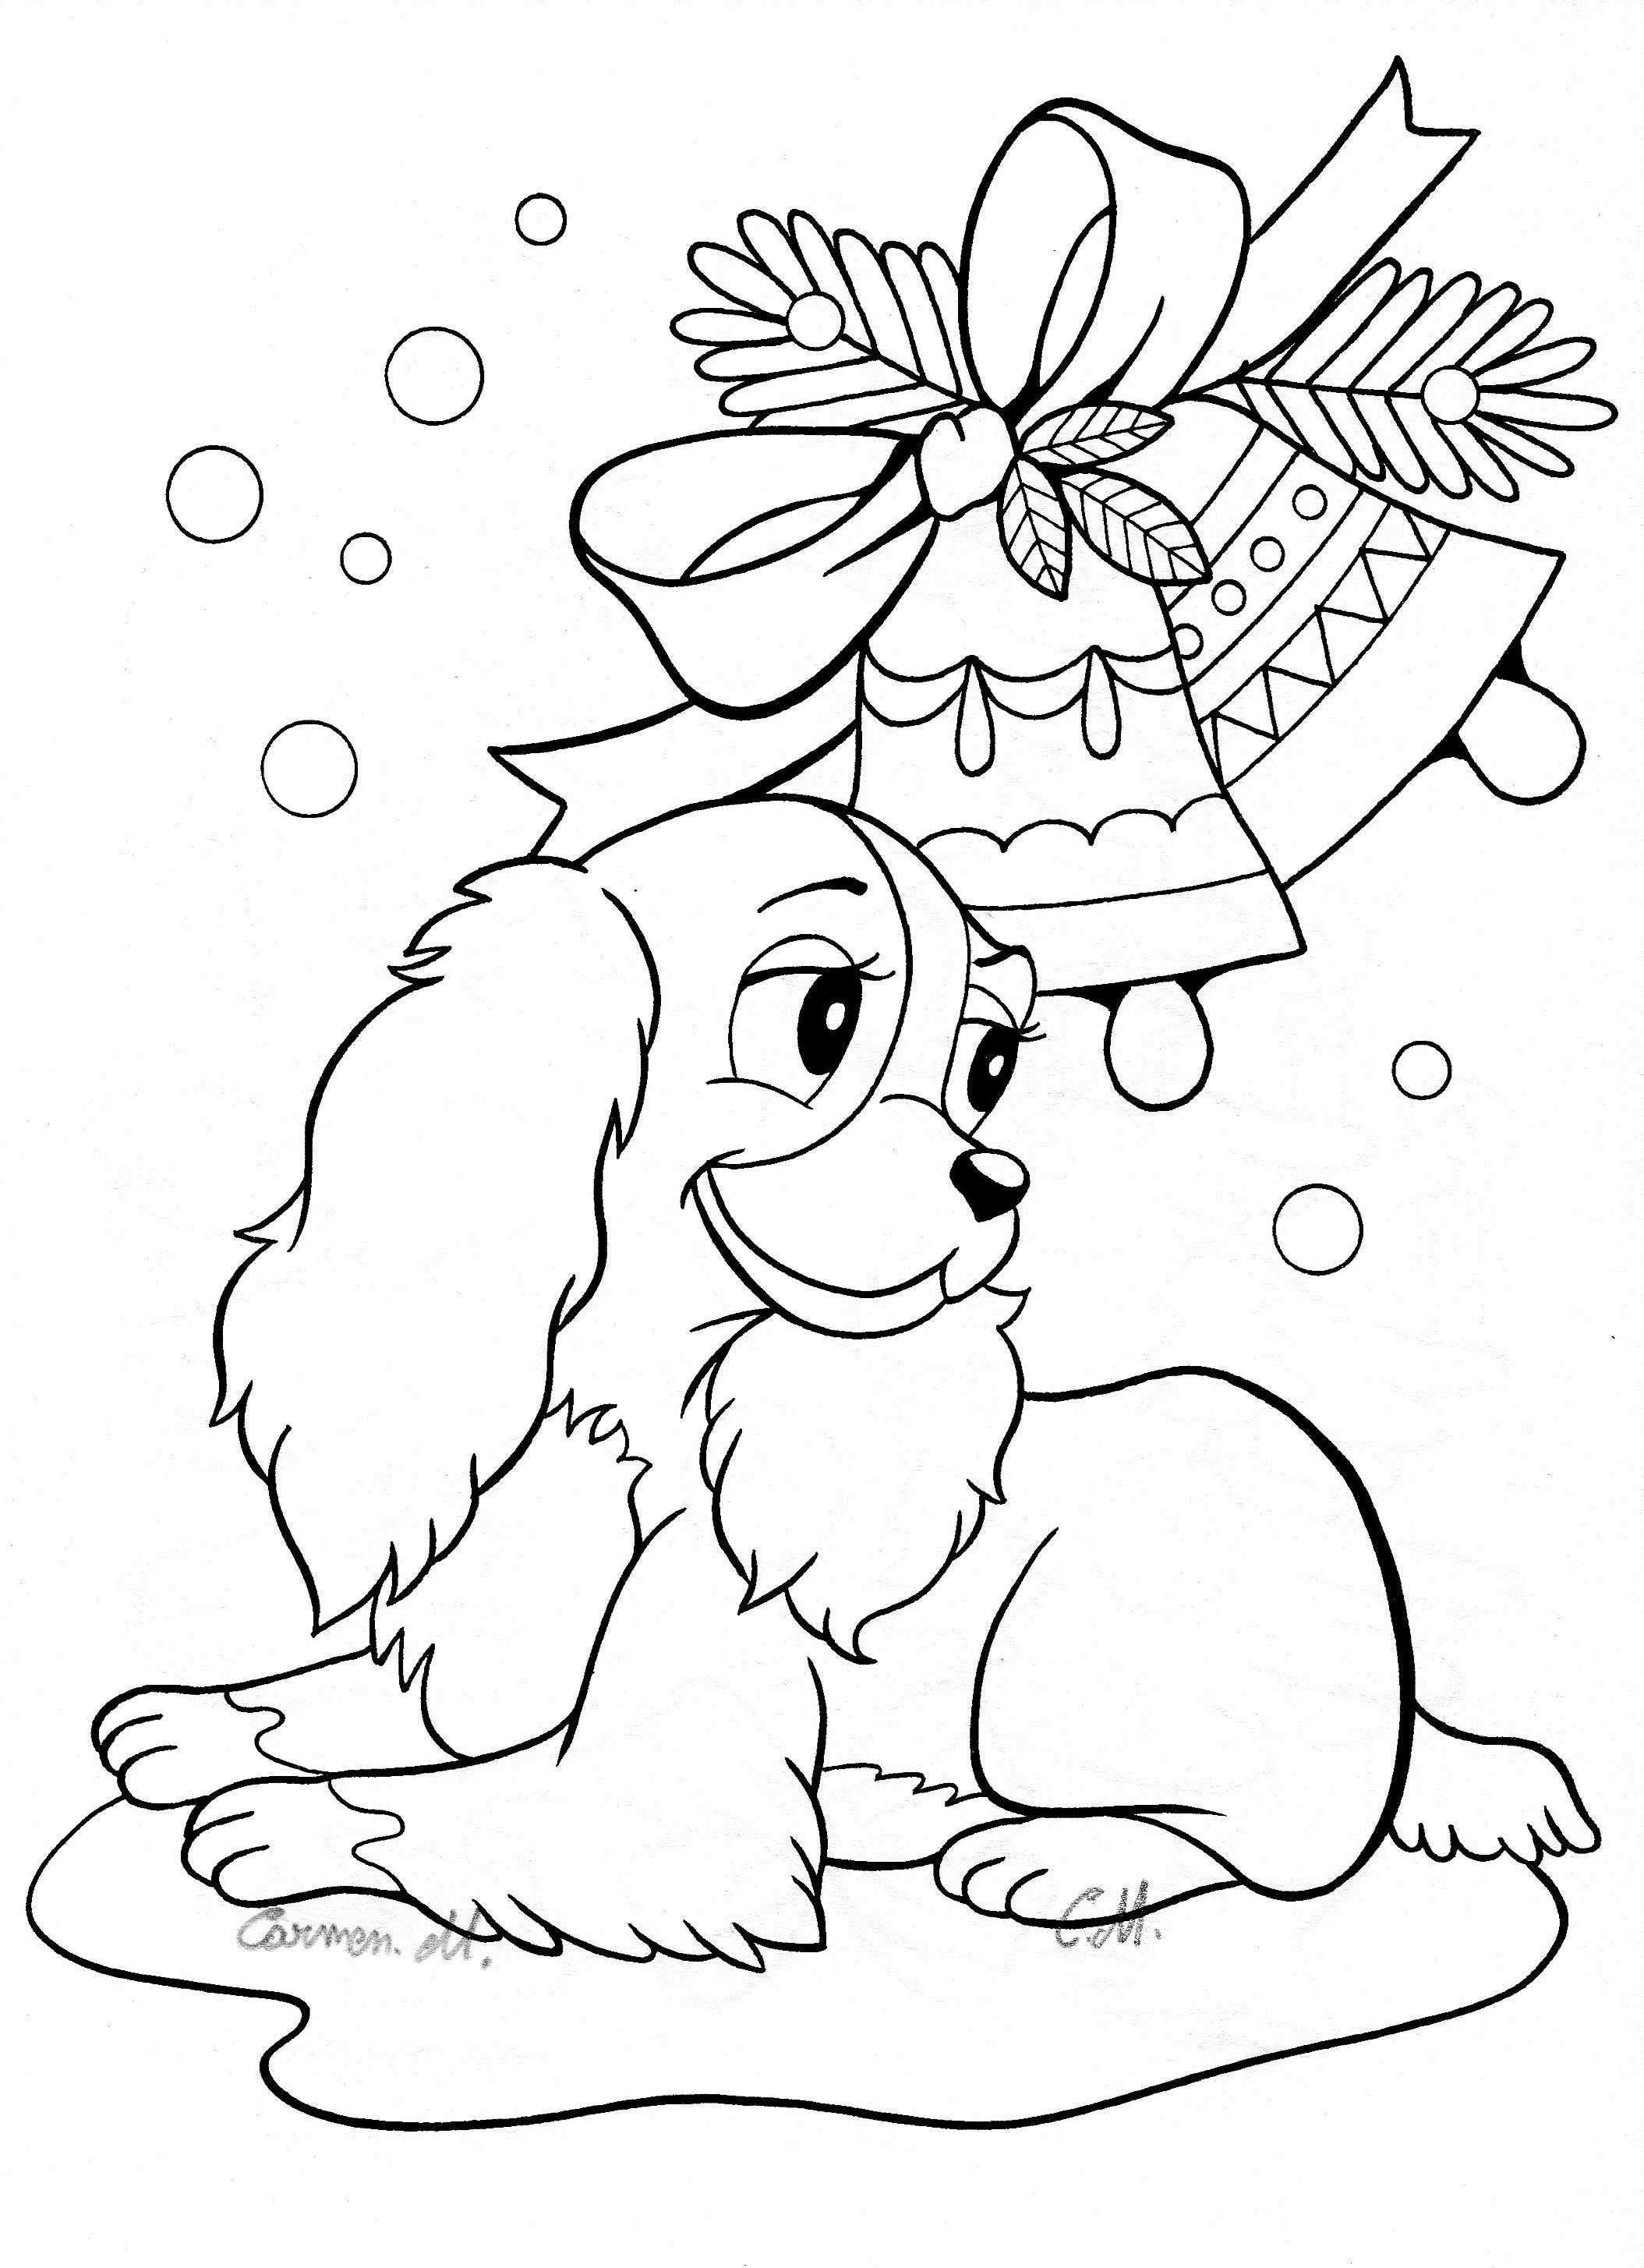 Christmas Coloring Pages Of Puppies From The Thousands Of Photos On Line Concer Printable Christmas Coloring Pages Disney Coloring Pages Puppy Coloring Pages